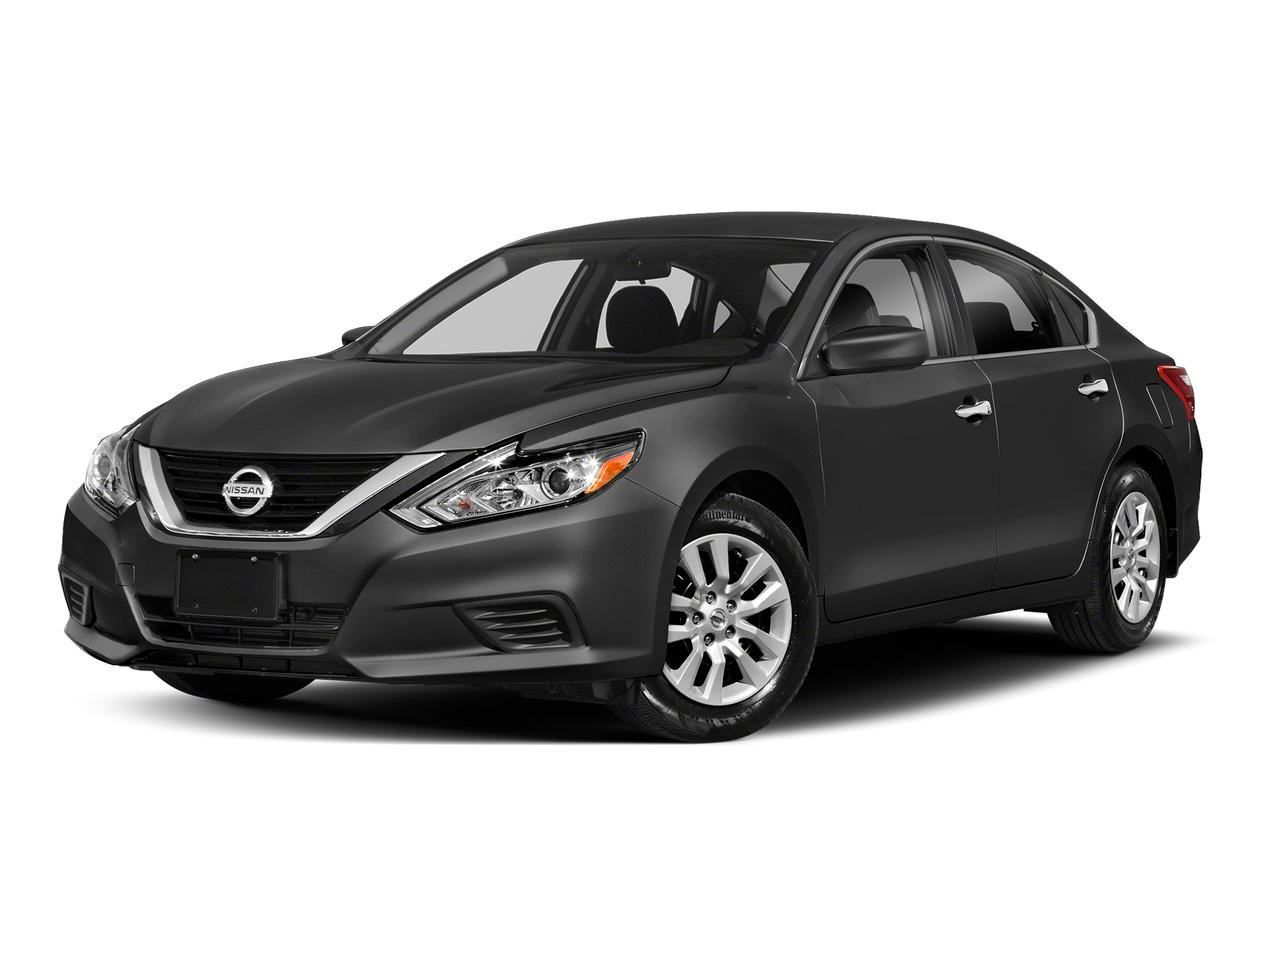 2018 Nissan Altima Vehicle Photo in Casper, WY 82609